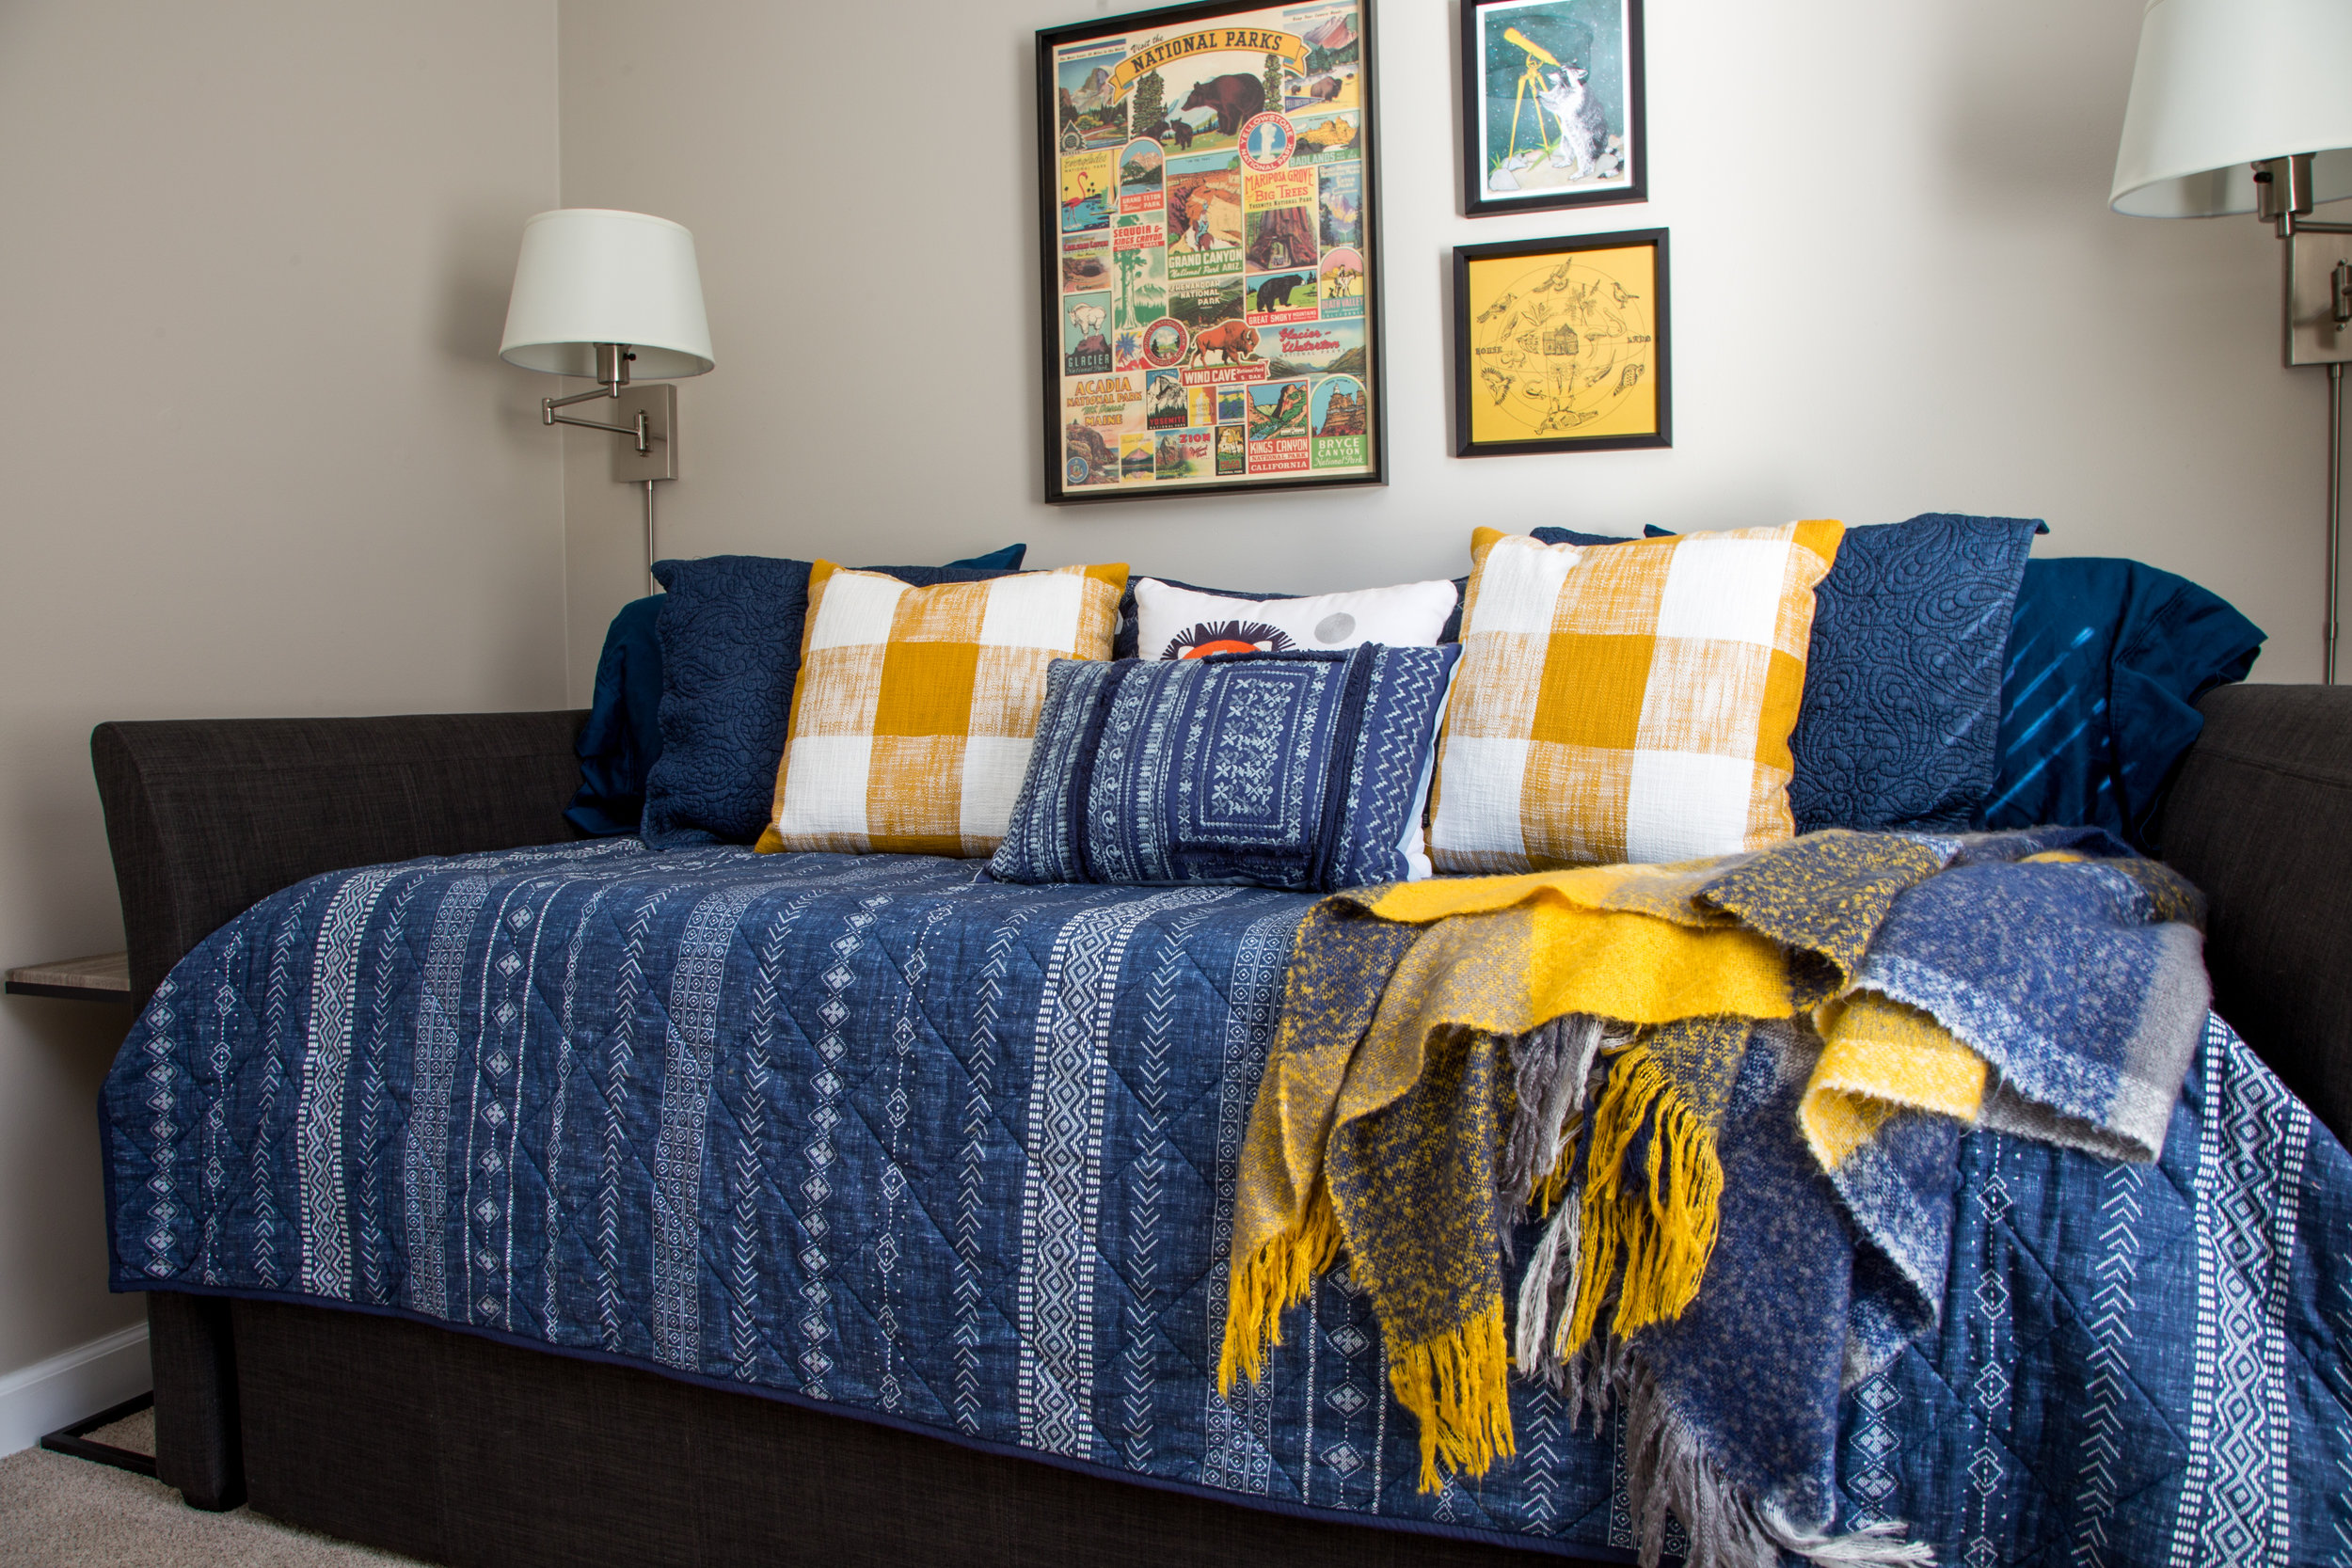 Large, comfortable daybed in the third bedroom also can also serve as seating for a den or play area.